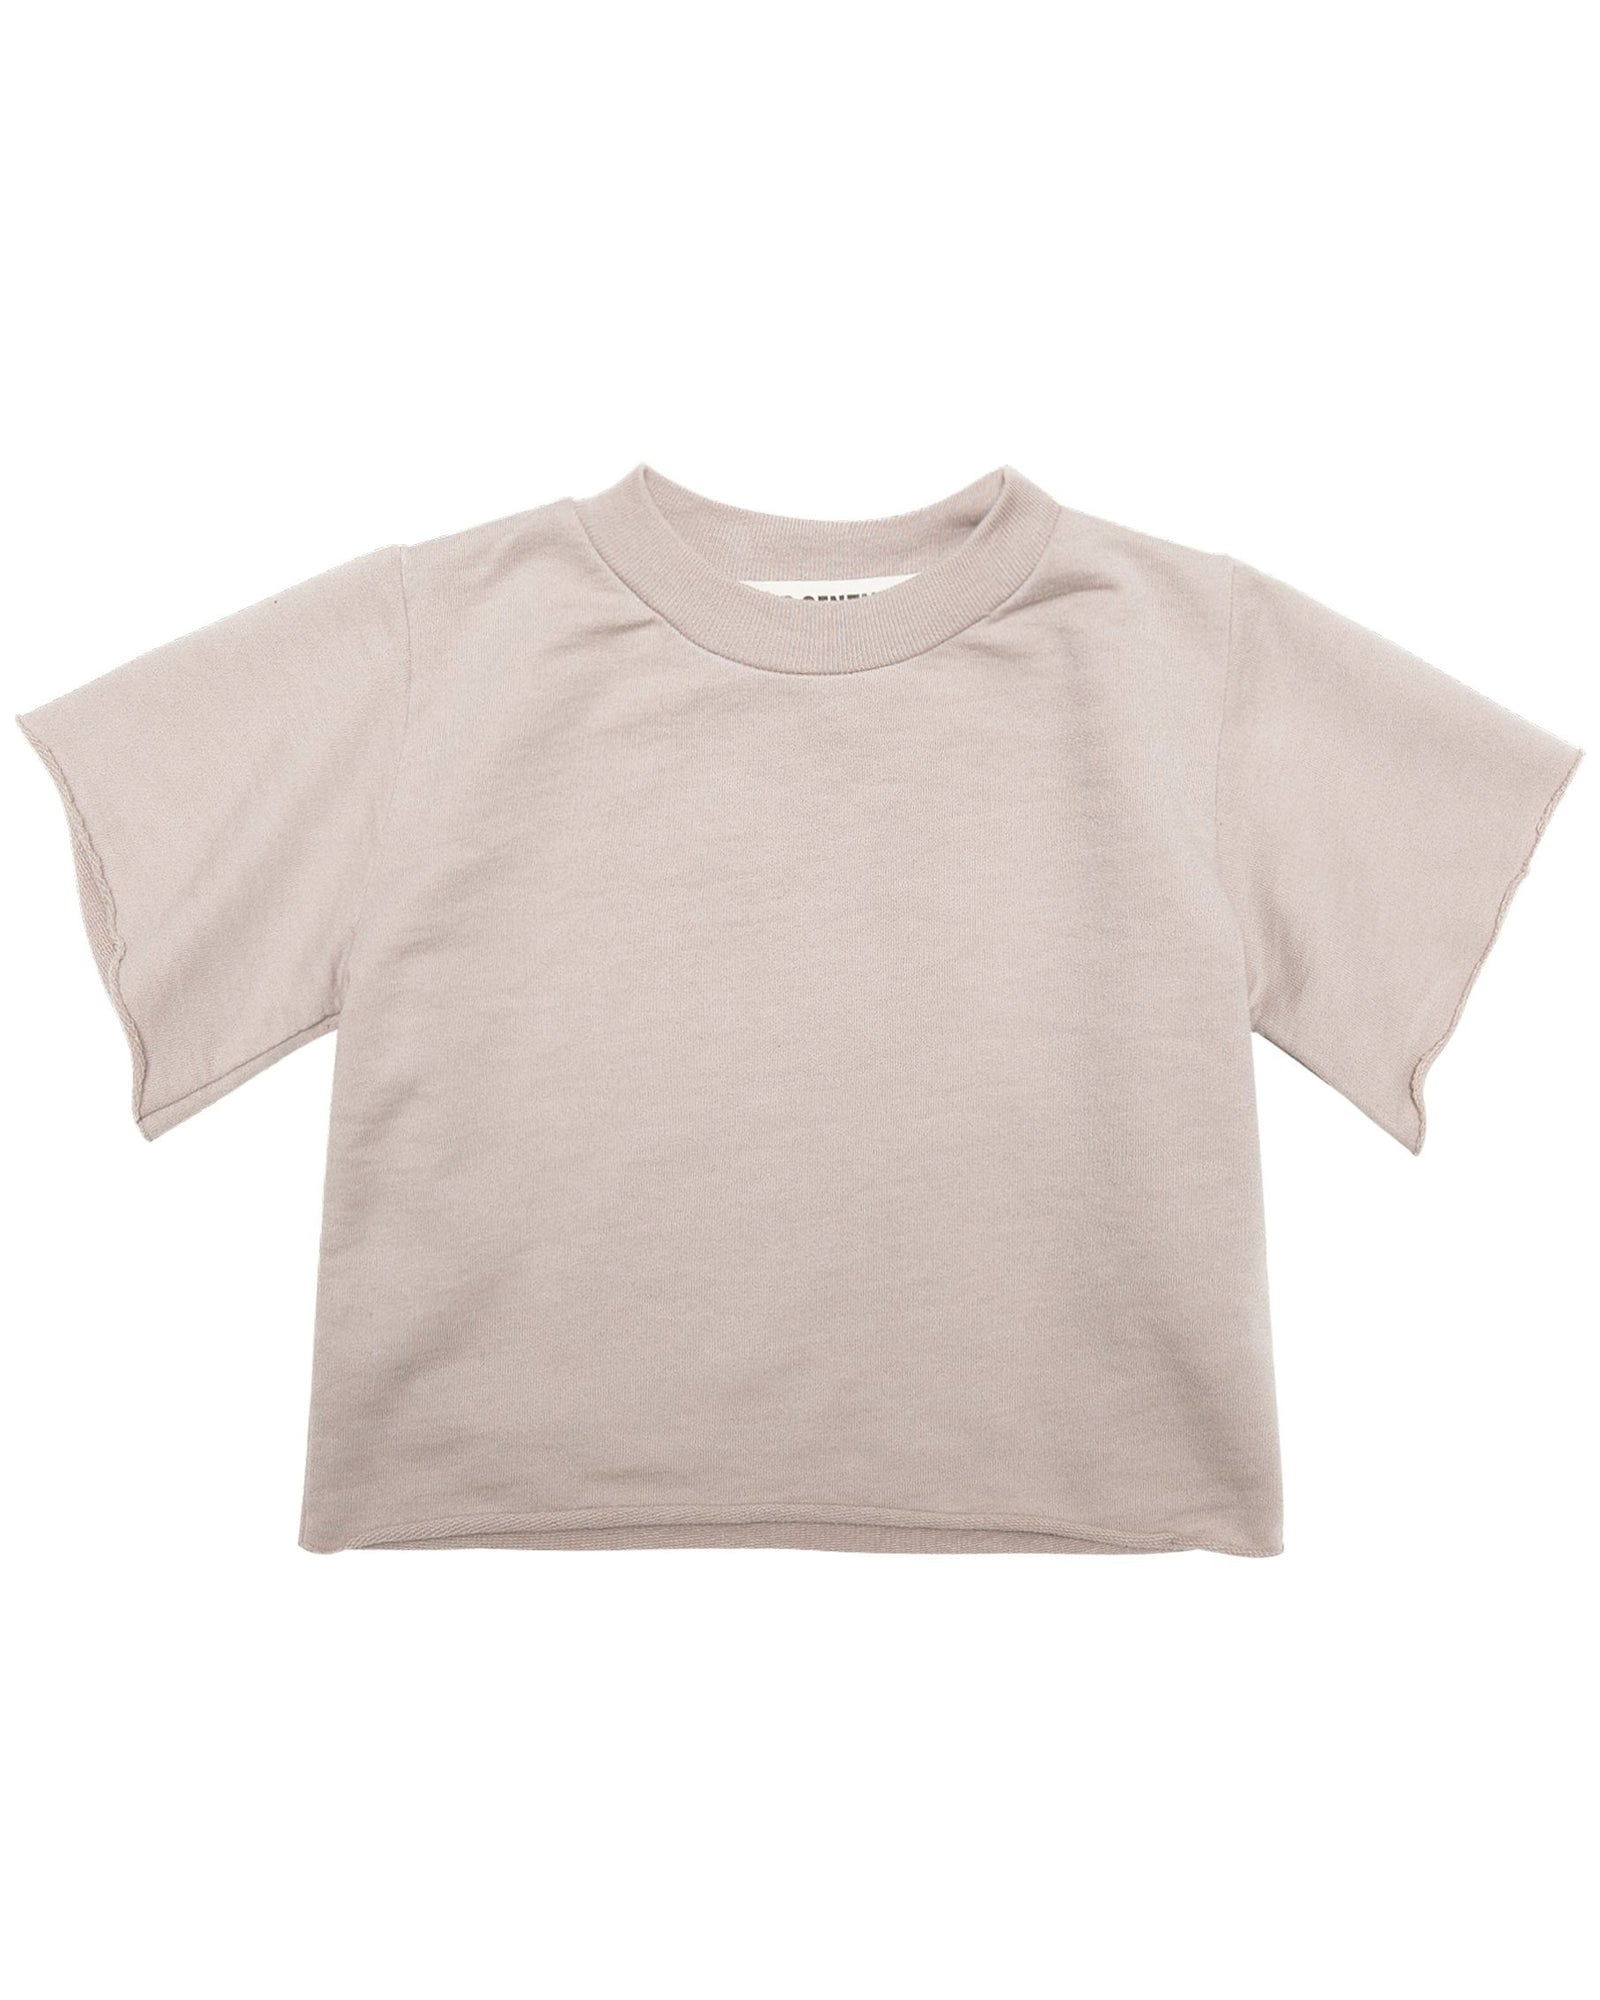 Little go gently nation girl french terry tee in sandstone